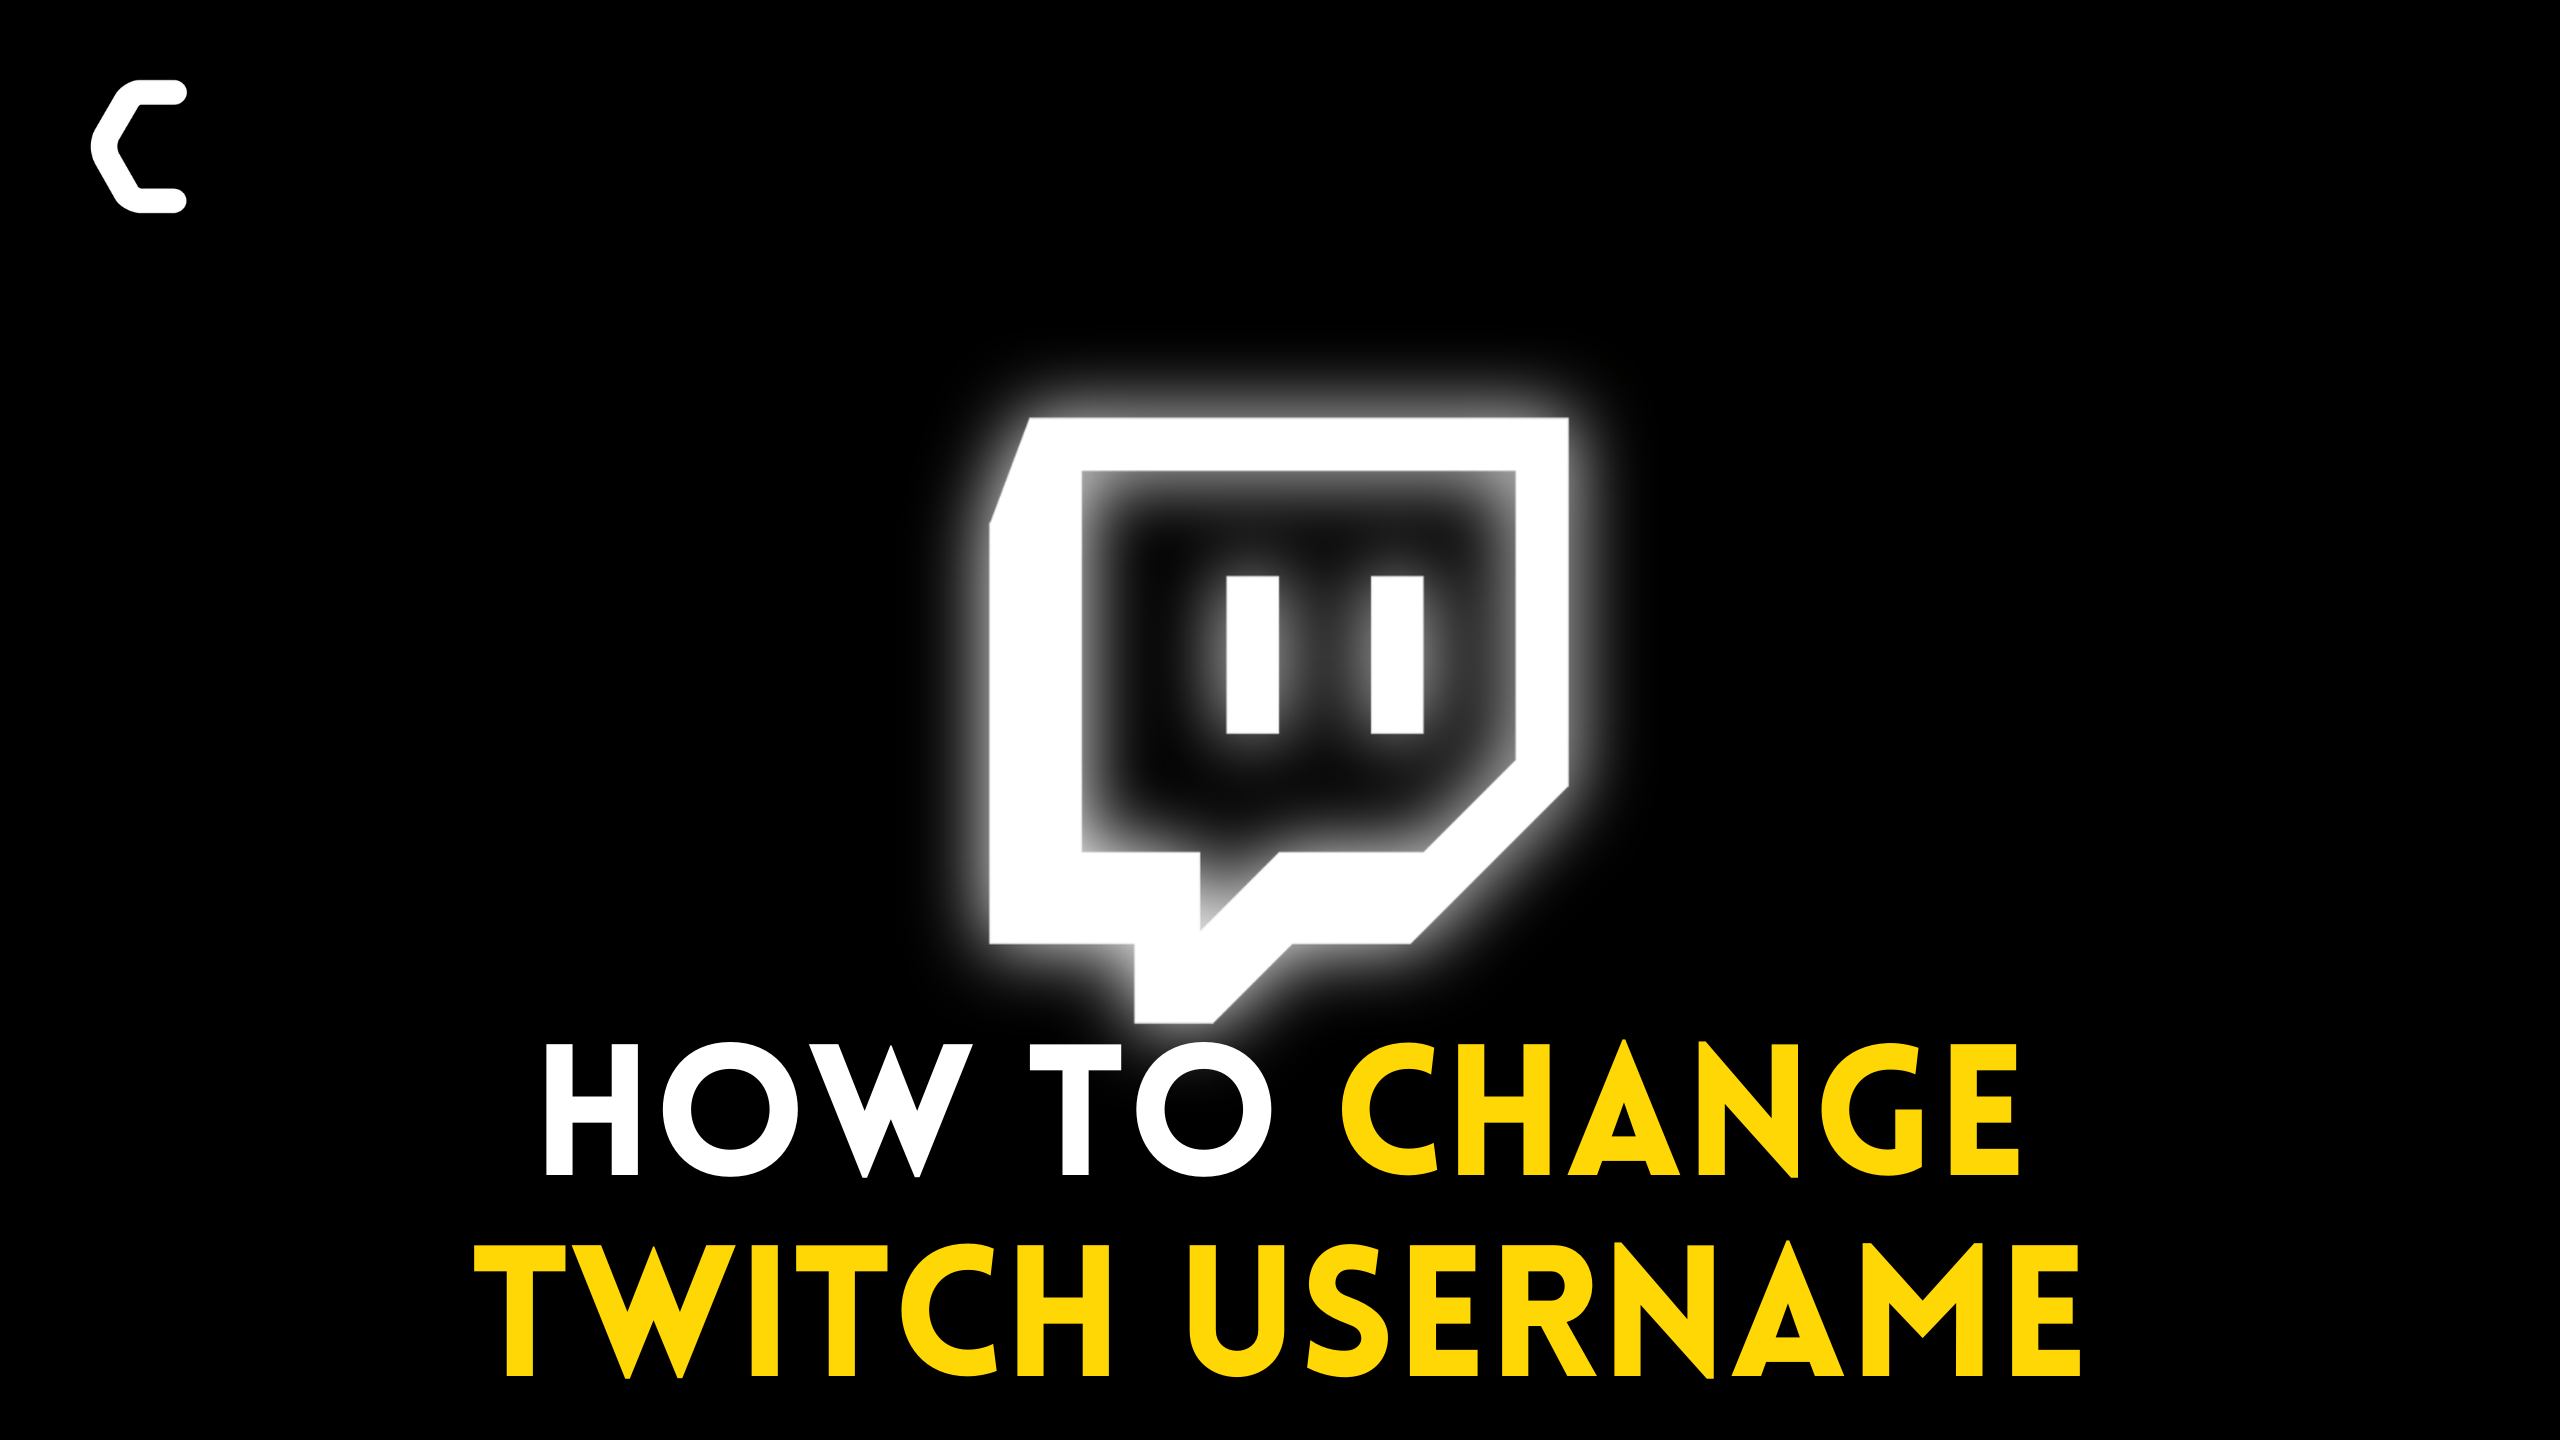 How to Change Twitch Username? Easy Tutorial to Update Username on Twitch